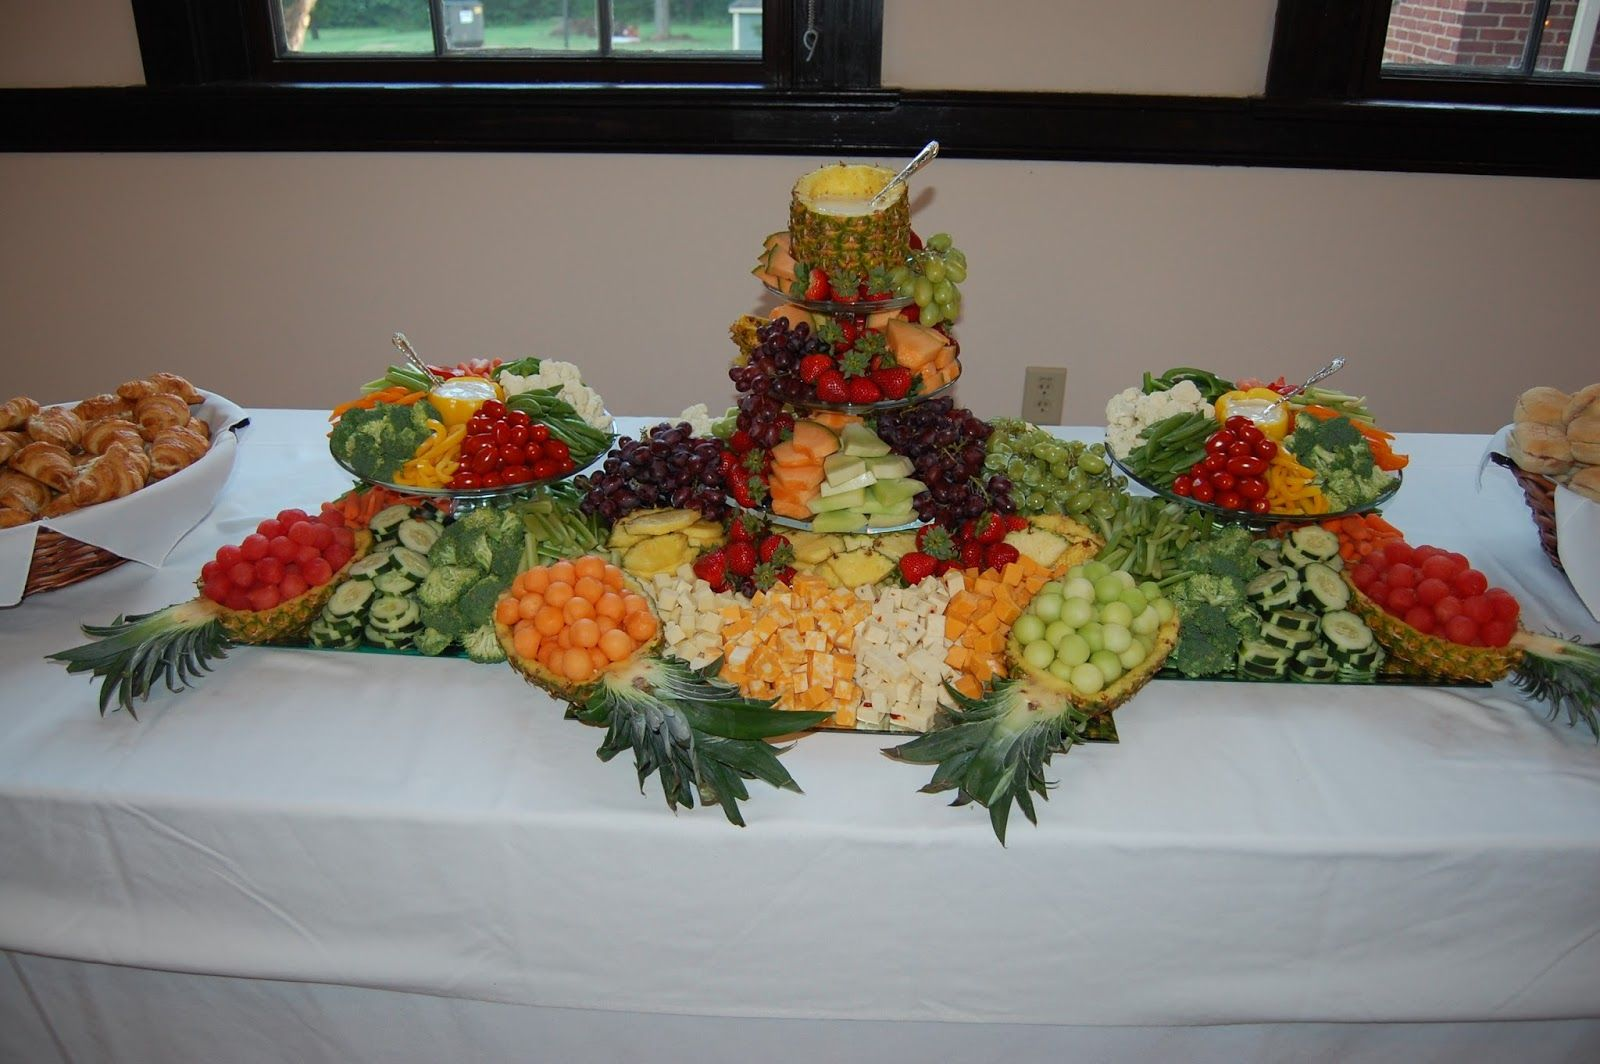 Wedding Vegetable Tray Similar To This Fruit Tray I Did Before For An Anniversary Party I Vegetable Tray Vegetable And Fruit Tray Fruit Tray